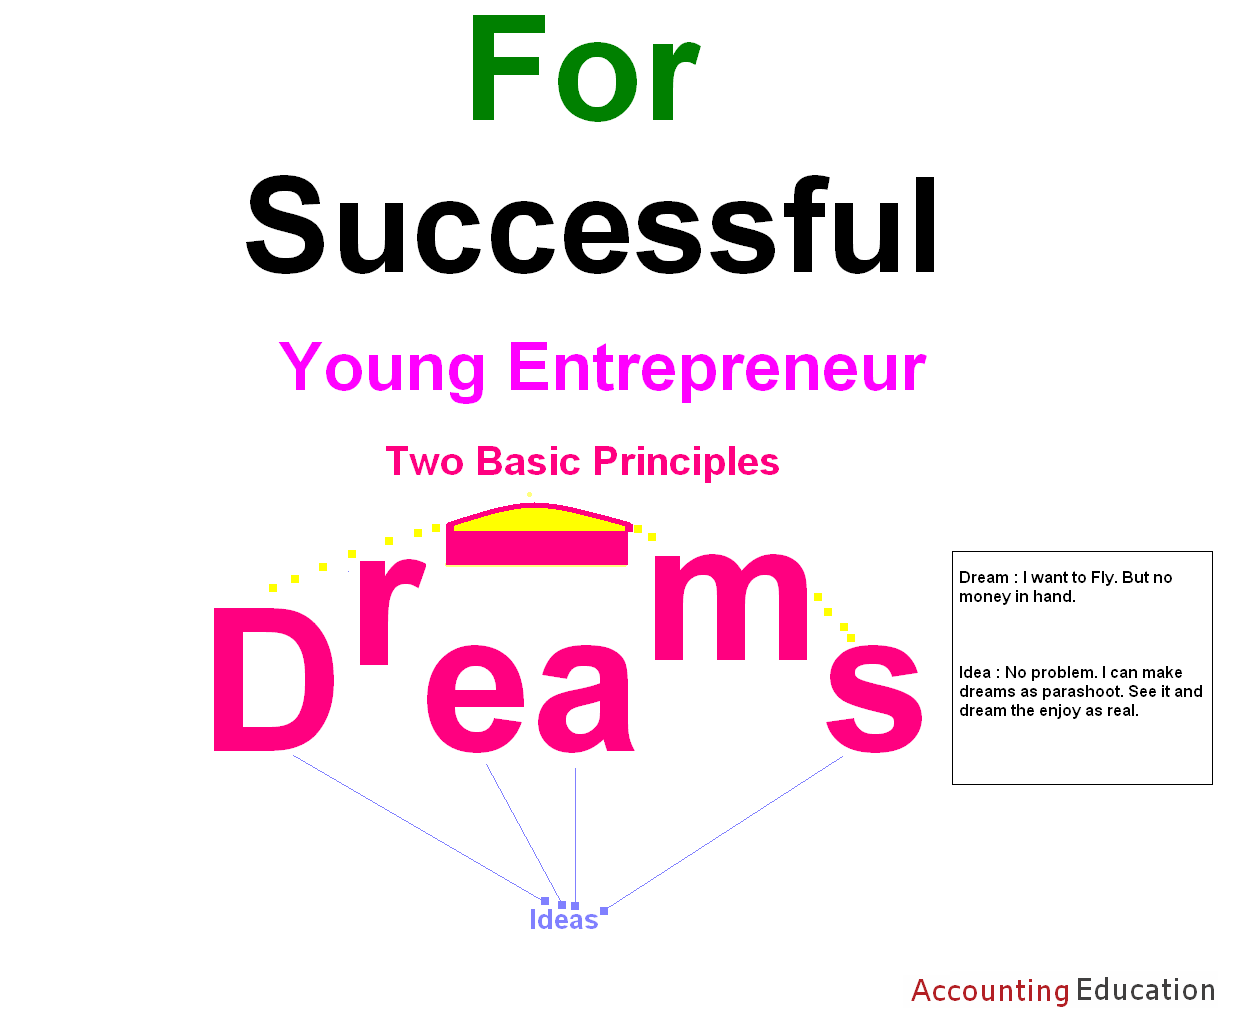 essay on how to become a successful entrepreneur Successful entrepreneurship involves taking risks  risk, and you need to be  ready to take these risks on before deciding to go into business.